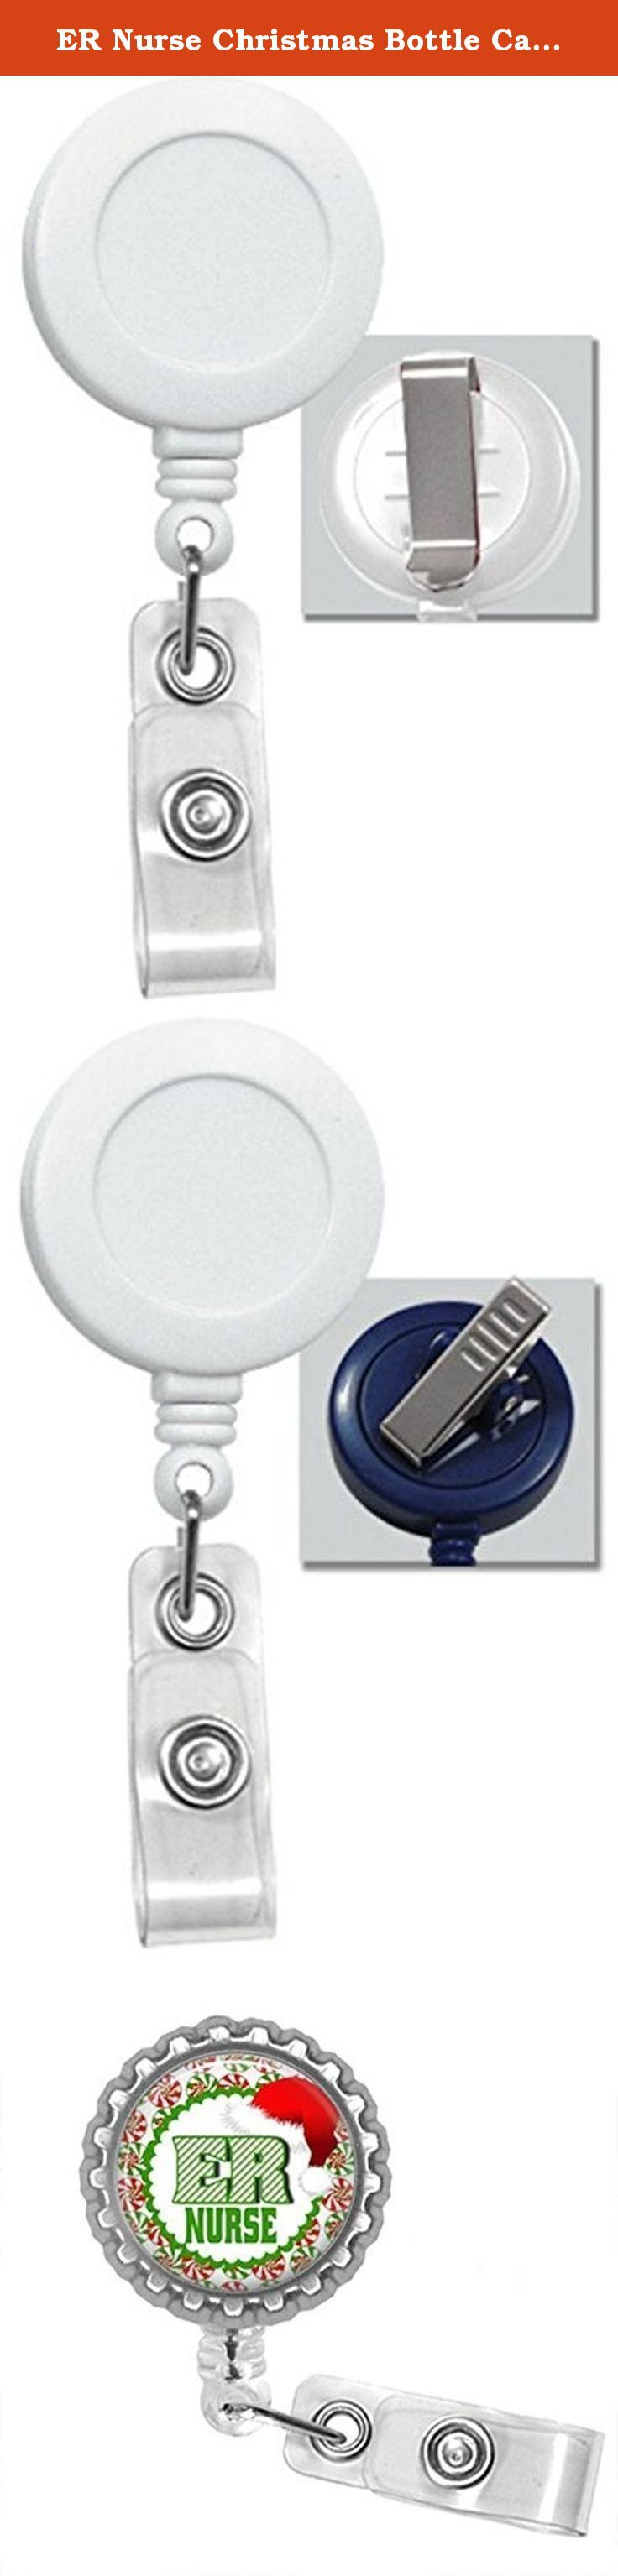 ER Nurse Christmas Bottle Cap Retractable Badge ID Holder. ER nurse Christmas bottlecap badge reel is a great item to hang your work or school Id's from. Badge is 1.25 in diameter. The badge also is a Retractable badge with your choice of either a clip or a swivel alligator clip Pictures 2 is a slide clip picture 3 is an alligator clip. The retractable cord is 24 inches Badge reel says ER Nurse. The color of the badge reel is white.